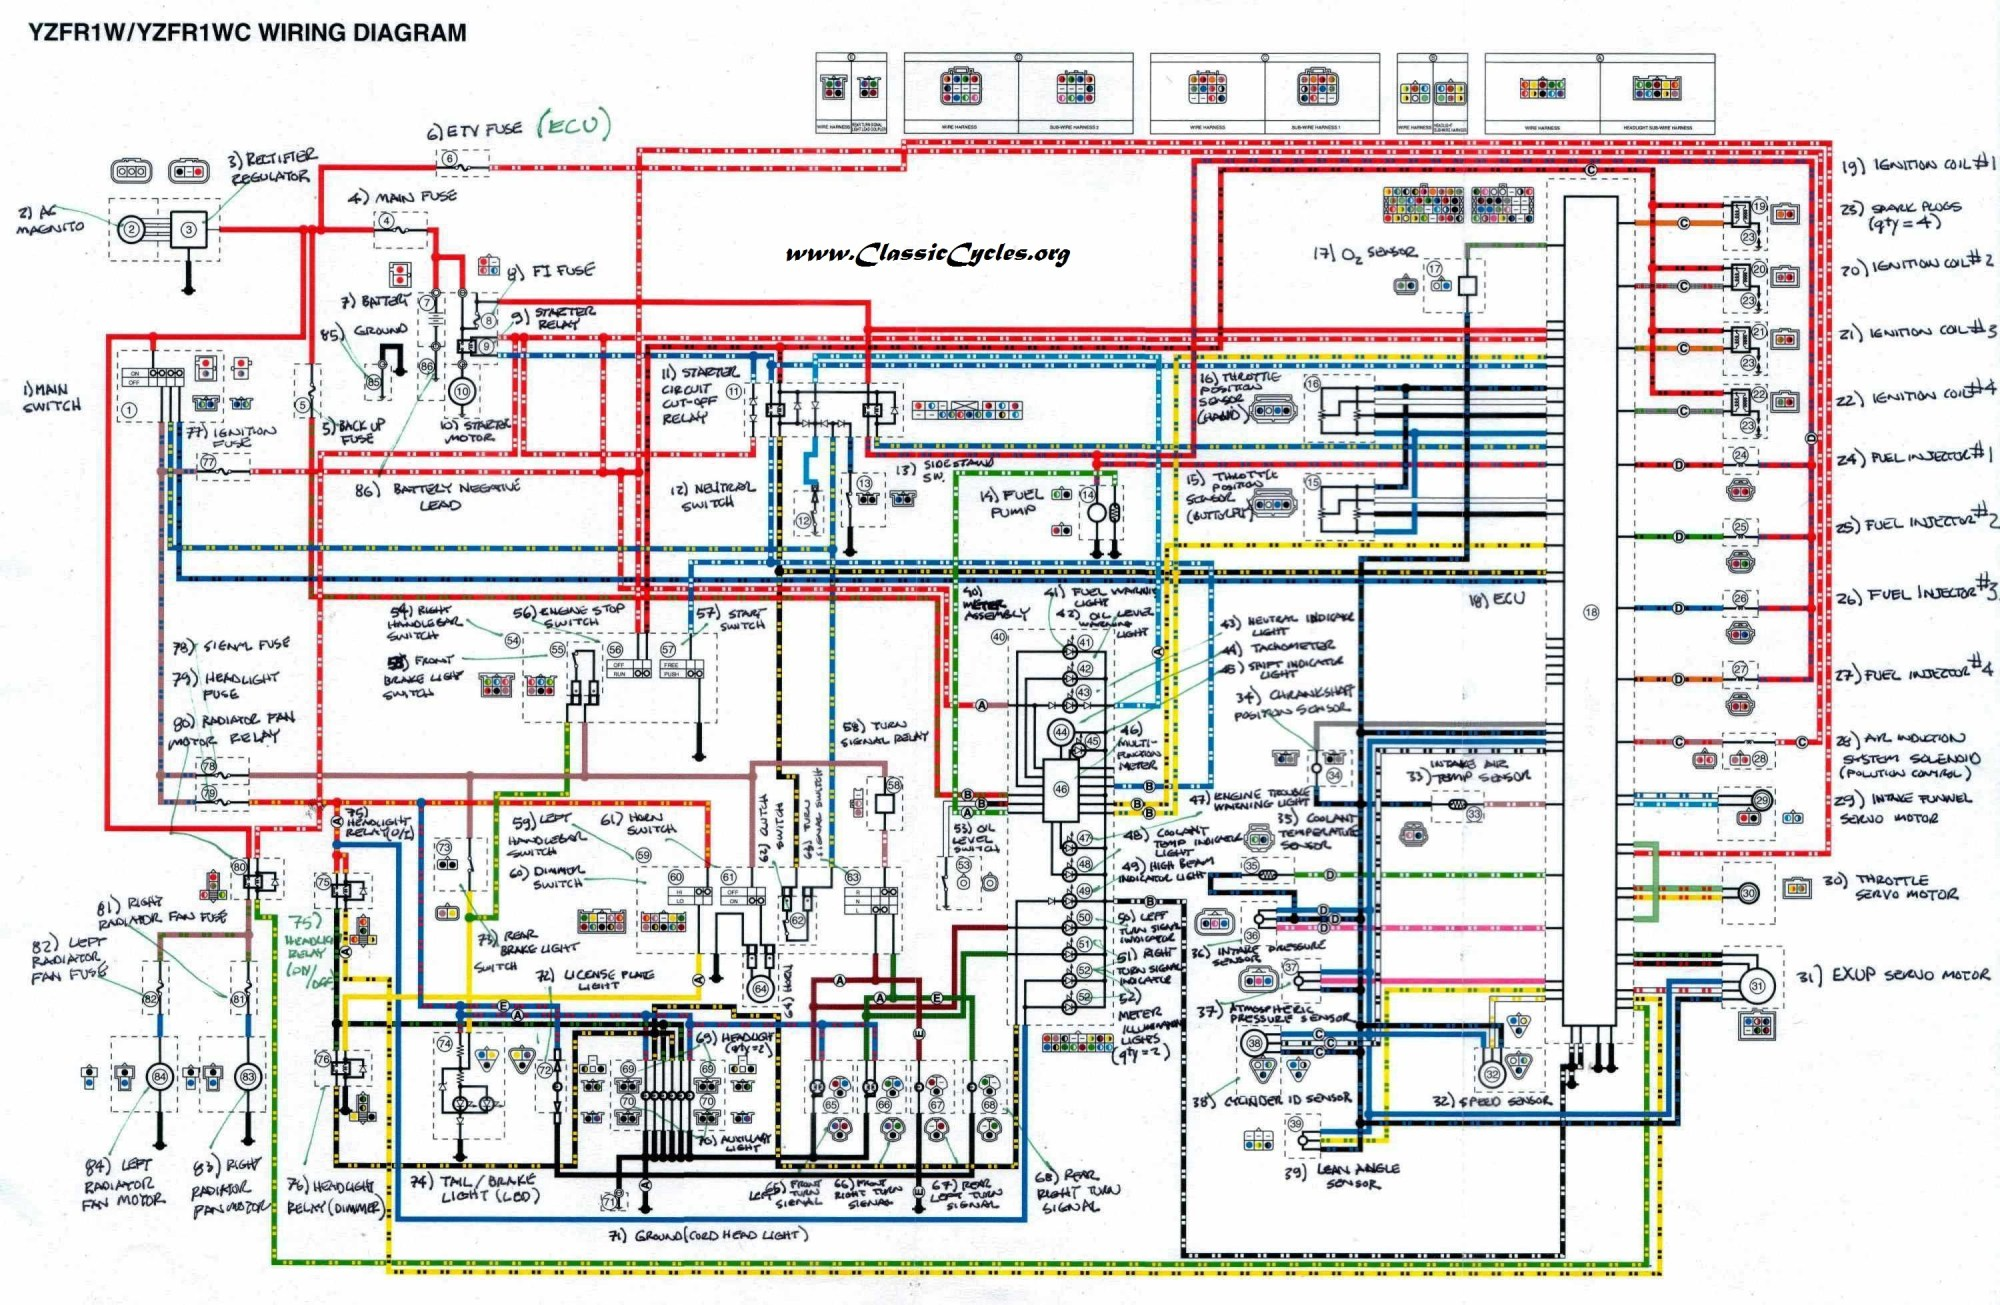 hight resolution of 1972 yamaha 400 wiring diagram wiring diagrams 75 yamaha dt250 wiring diagram 1972 yamaha